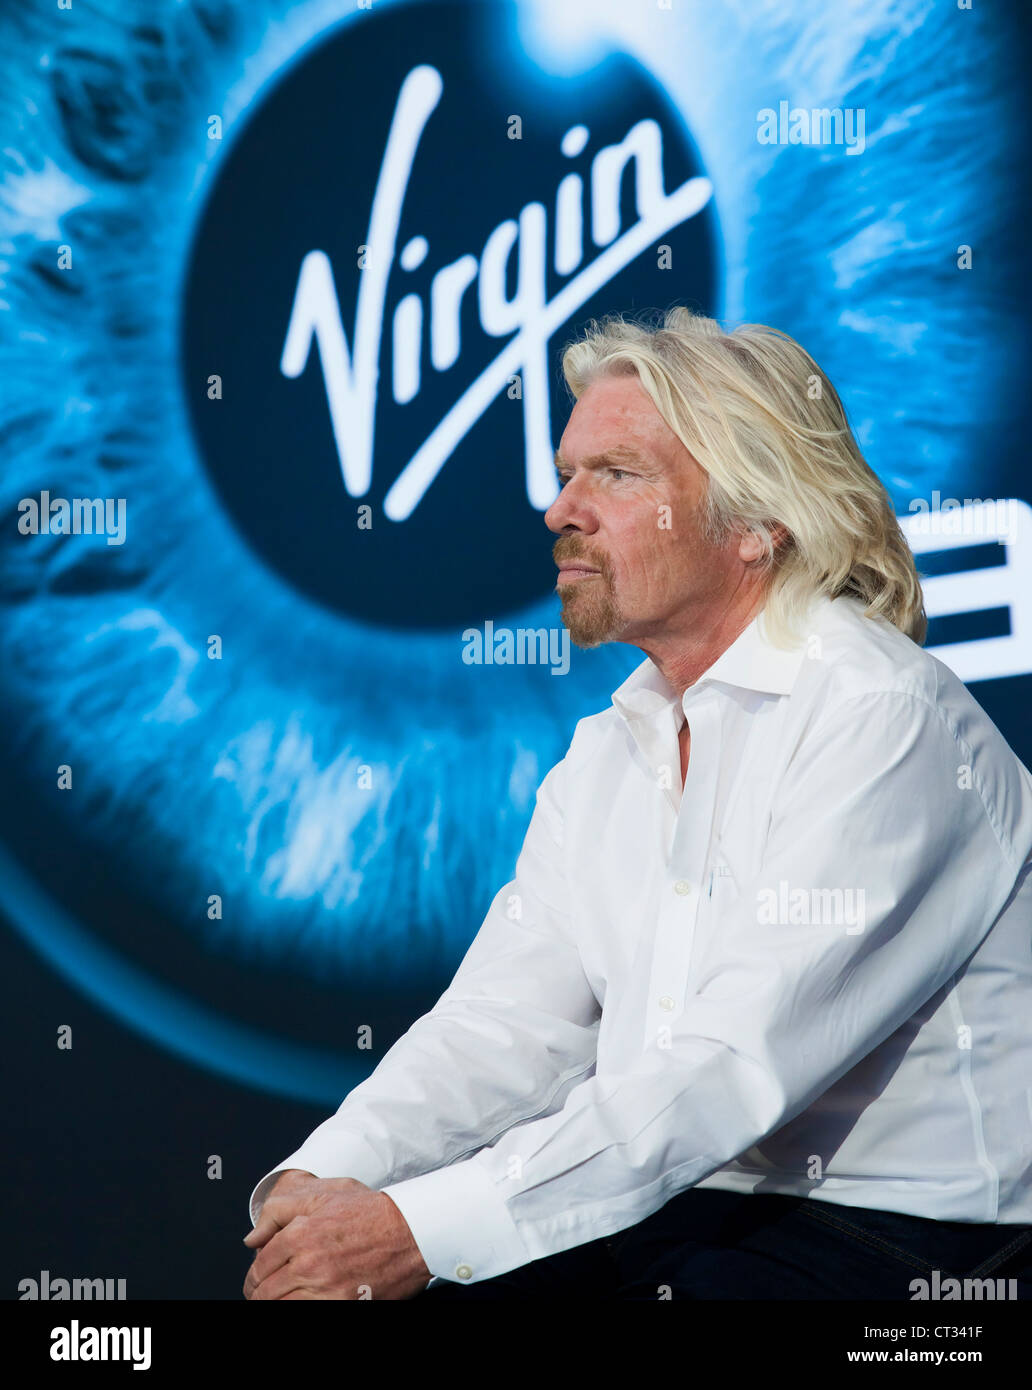 Richard Branson at the Virgin Galatic Gateway spaceport dedication in New Mexico. USA. - Stock Image